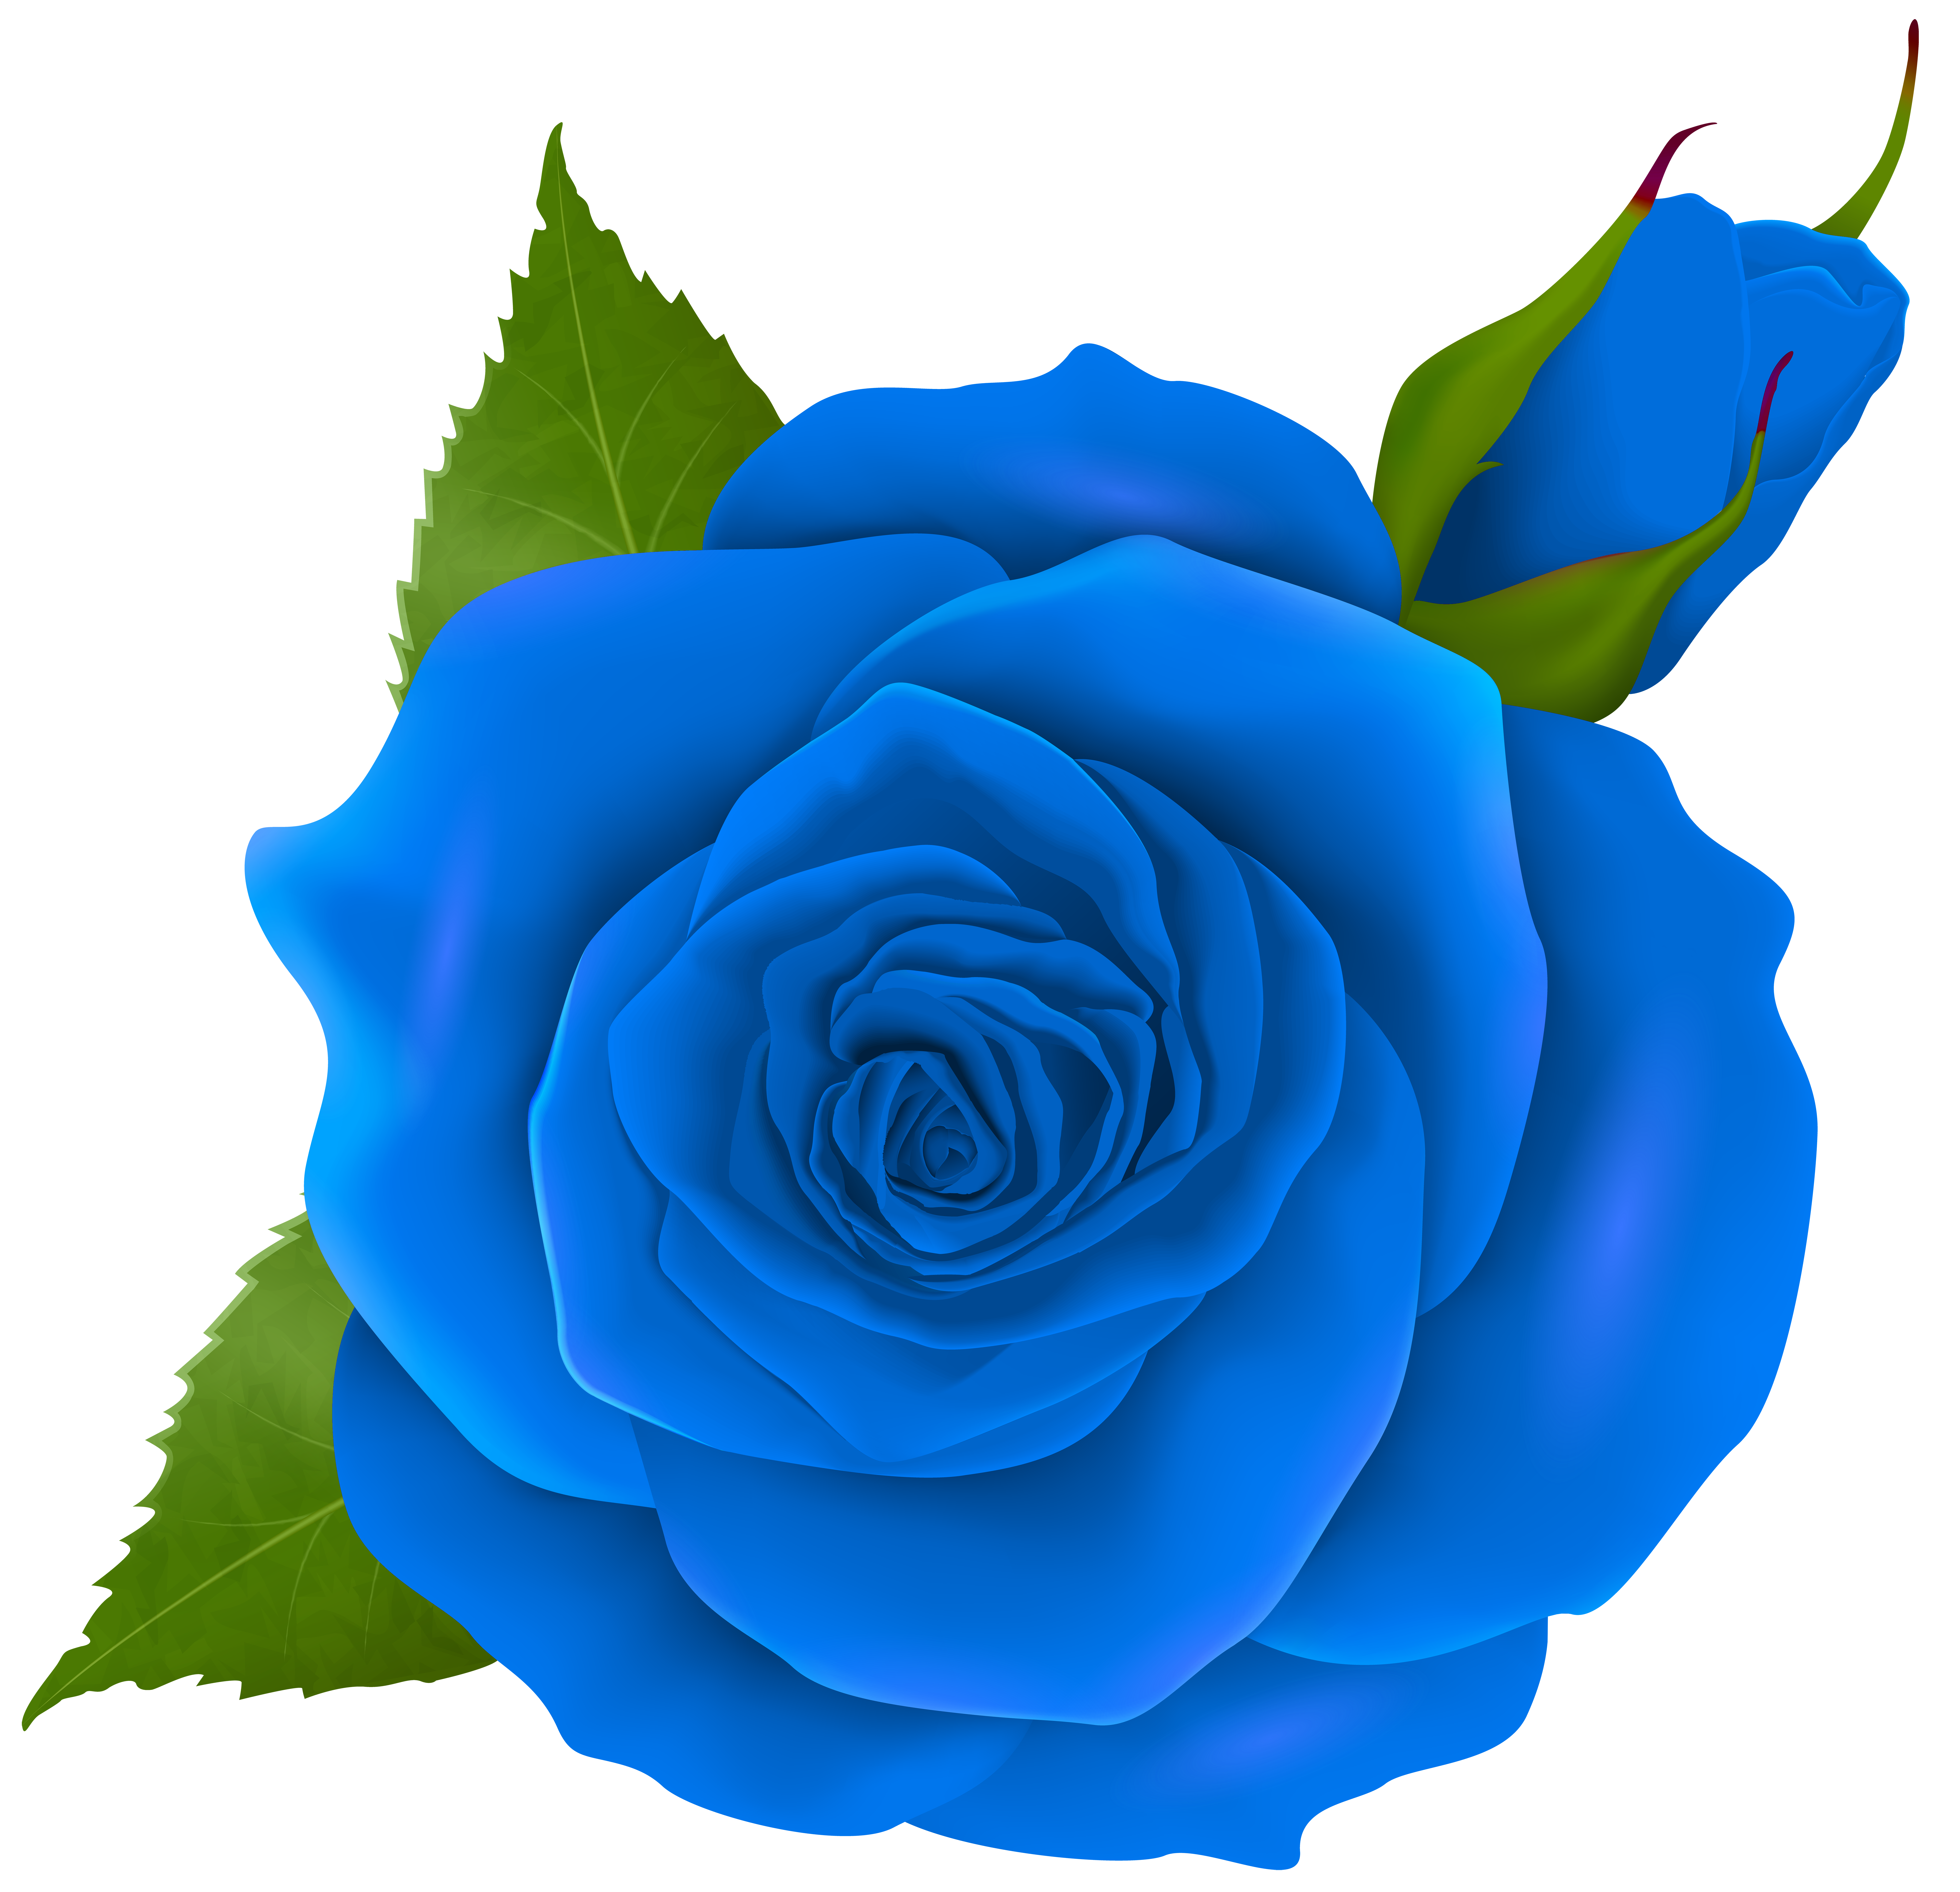 Blue Rose and Bud Transparent PNG Clip Art.